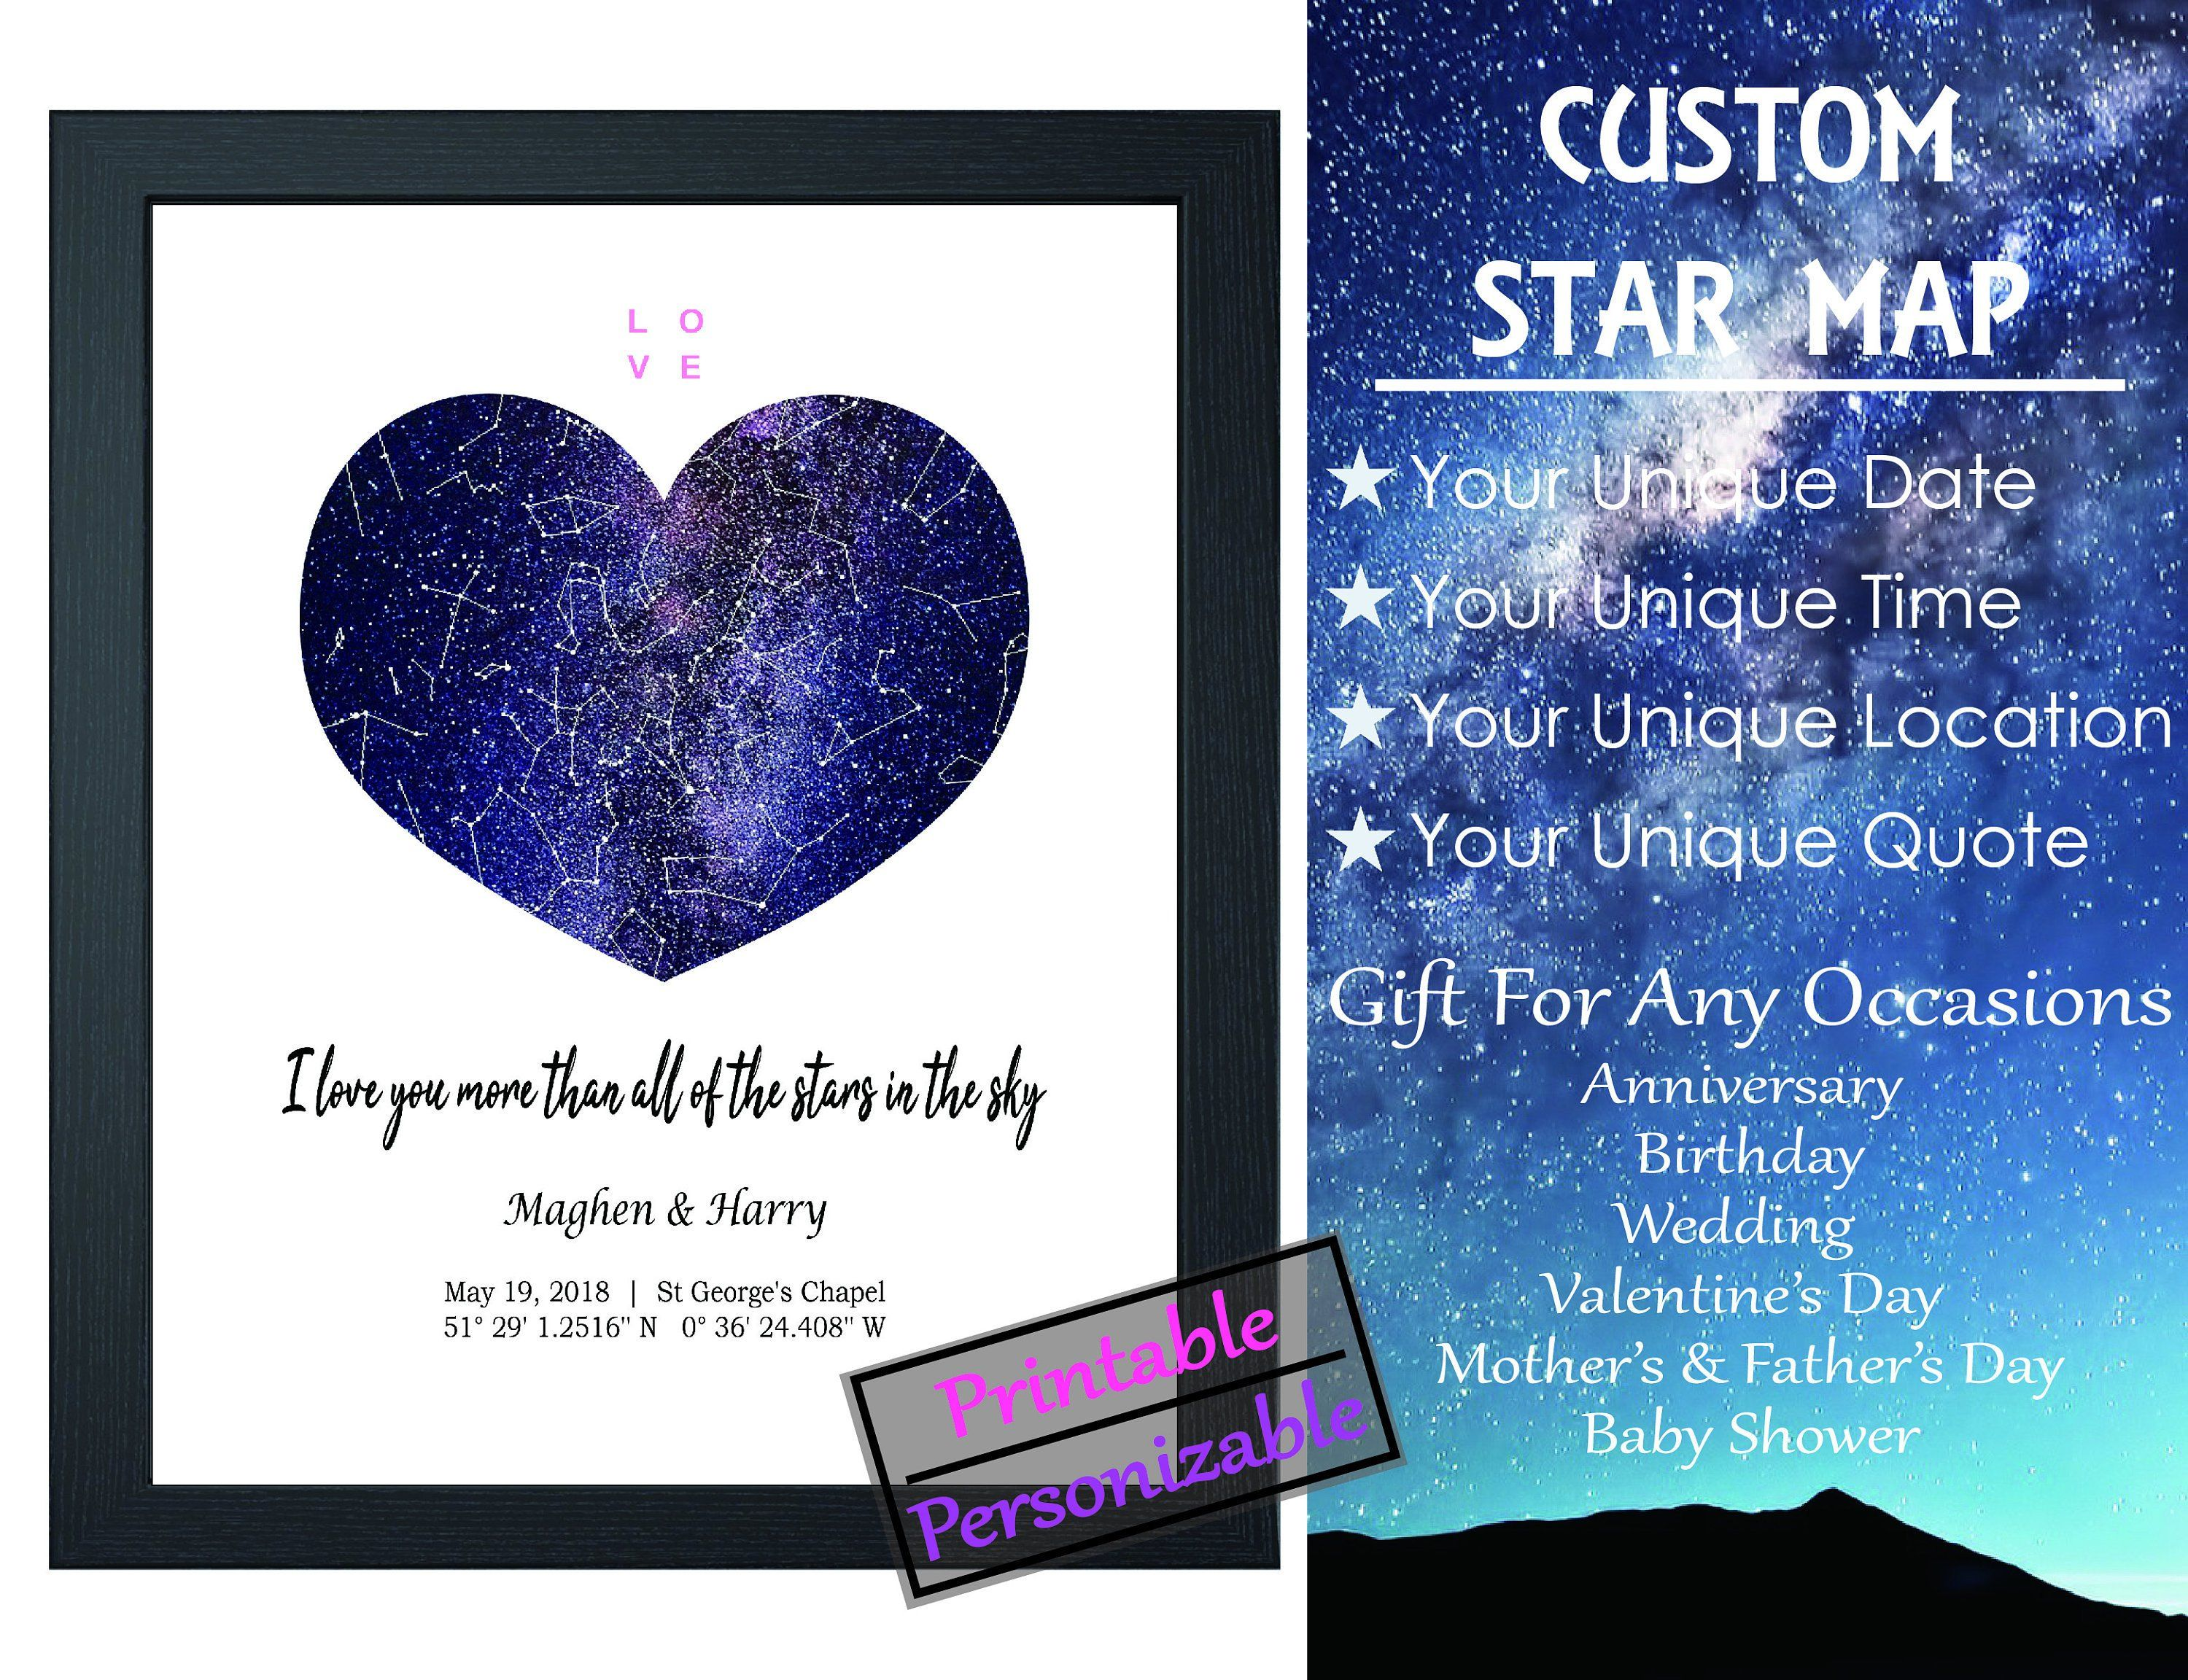 Custom Personalized Star Night Sky Map, Constellation Map ... on star map poster, constellation map poster, michigan lighthouse map poster,